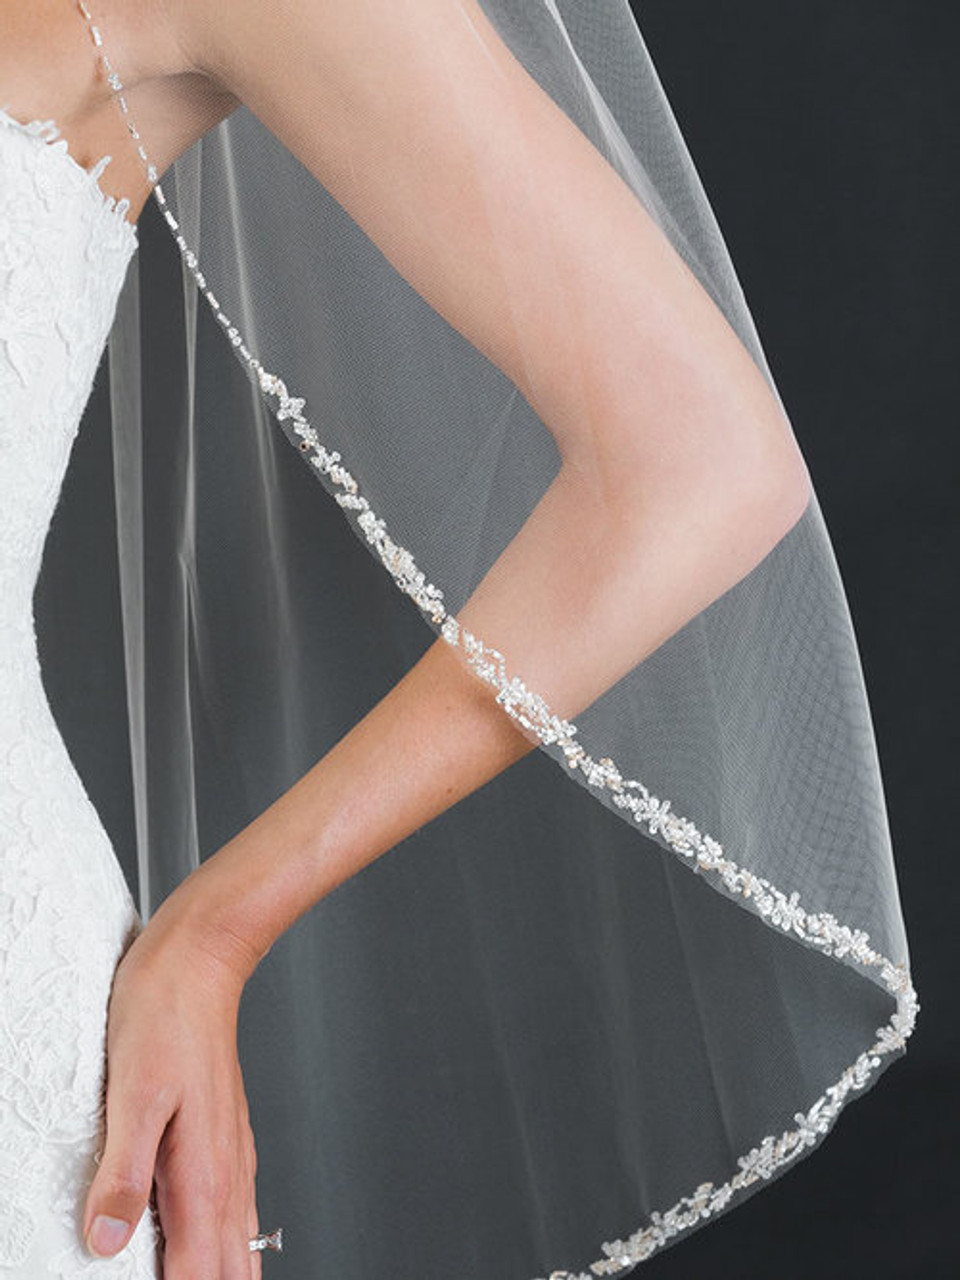 Bel Aire Bridal Veils V7461 - 1-tier fingertip veil with edge of frosted and silver bugle beads, and rhinestones